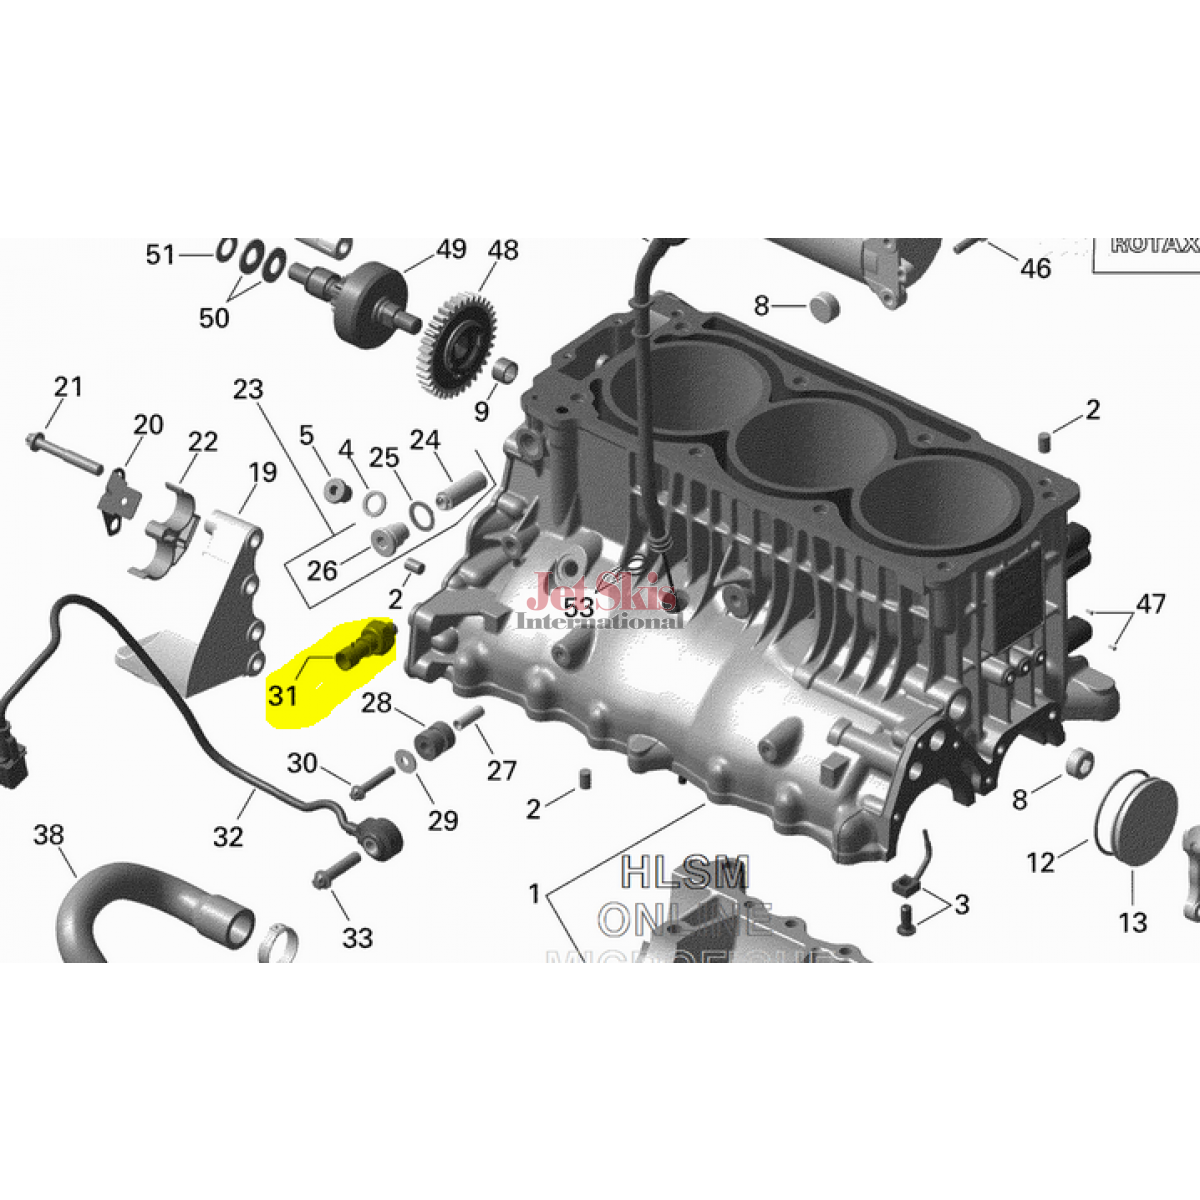 Ski Doo 215 Engine Diagram Diy Wiring Diagrams Sea Oil Pressure Switch 420856533 Fitment Chart Jet Skis Rh Jetskisint Com 1994 Parts Manual